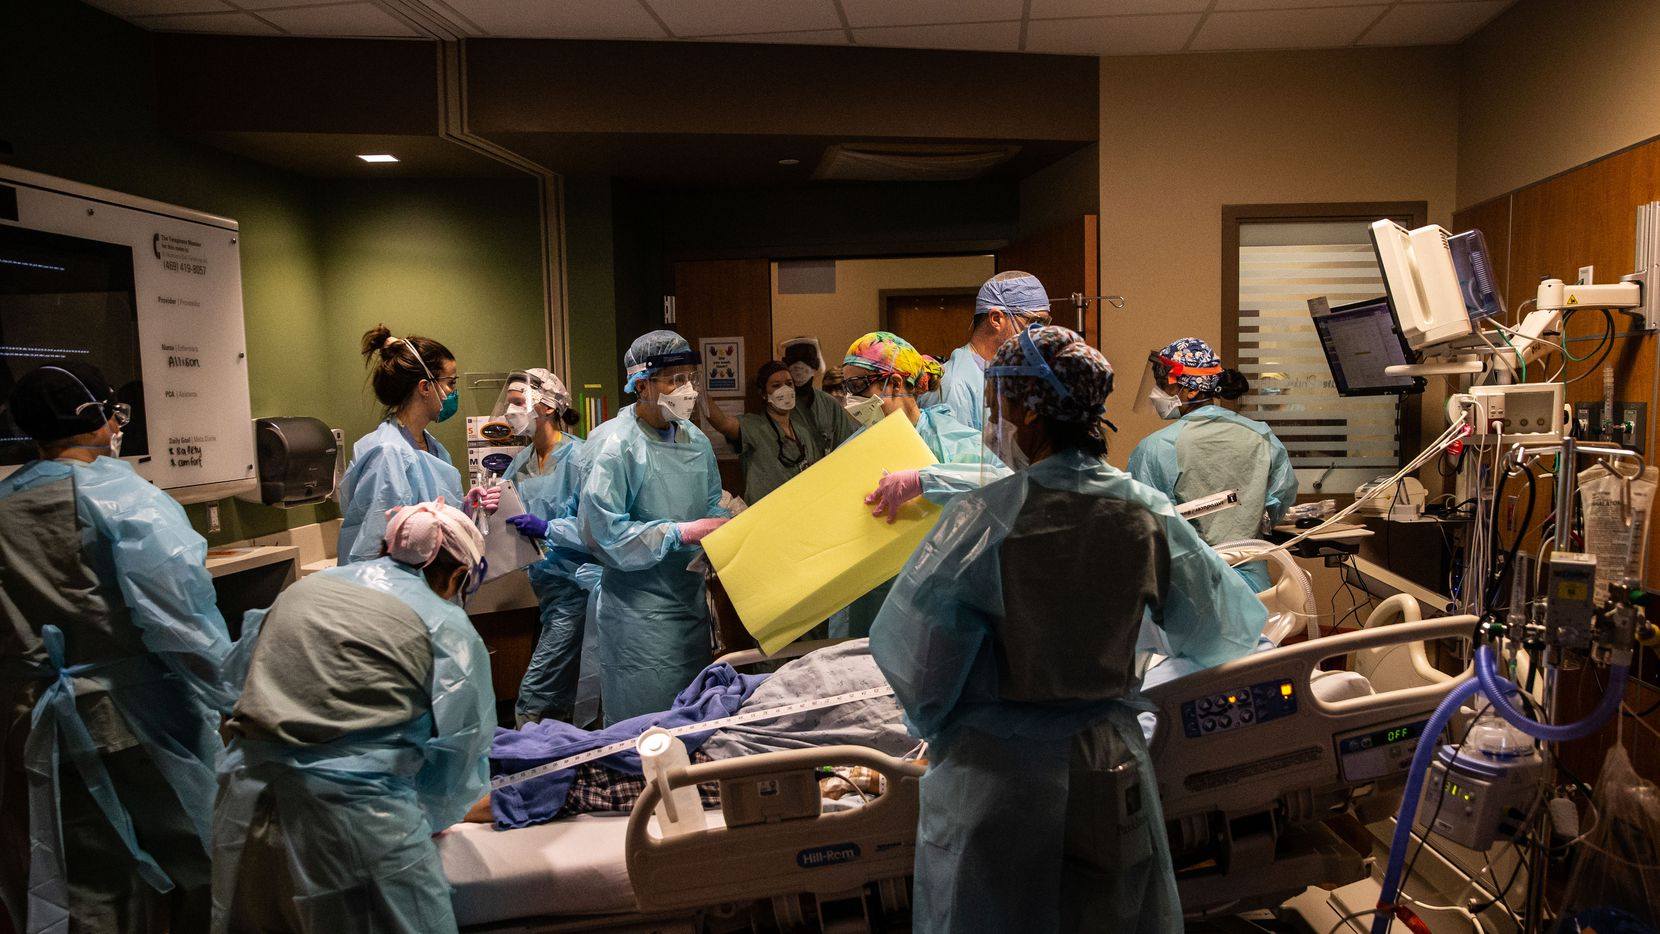 Over a dozen medical workers had to quickly mobilize to intubate a patient with COVID-19 at Parkland Memorial Hospital in early December. The pandemic has taken a great toll in lost lives and disrupted livelihoods, but it's also led to more collaboration and innovation, experts said.